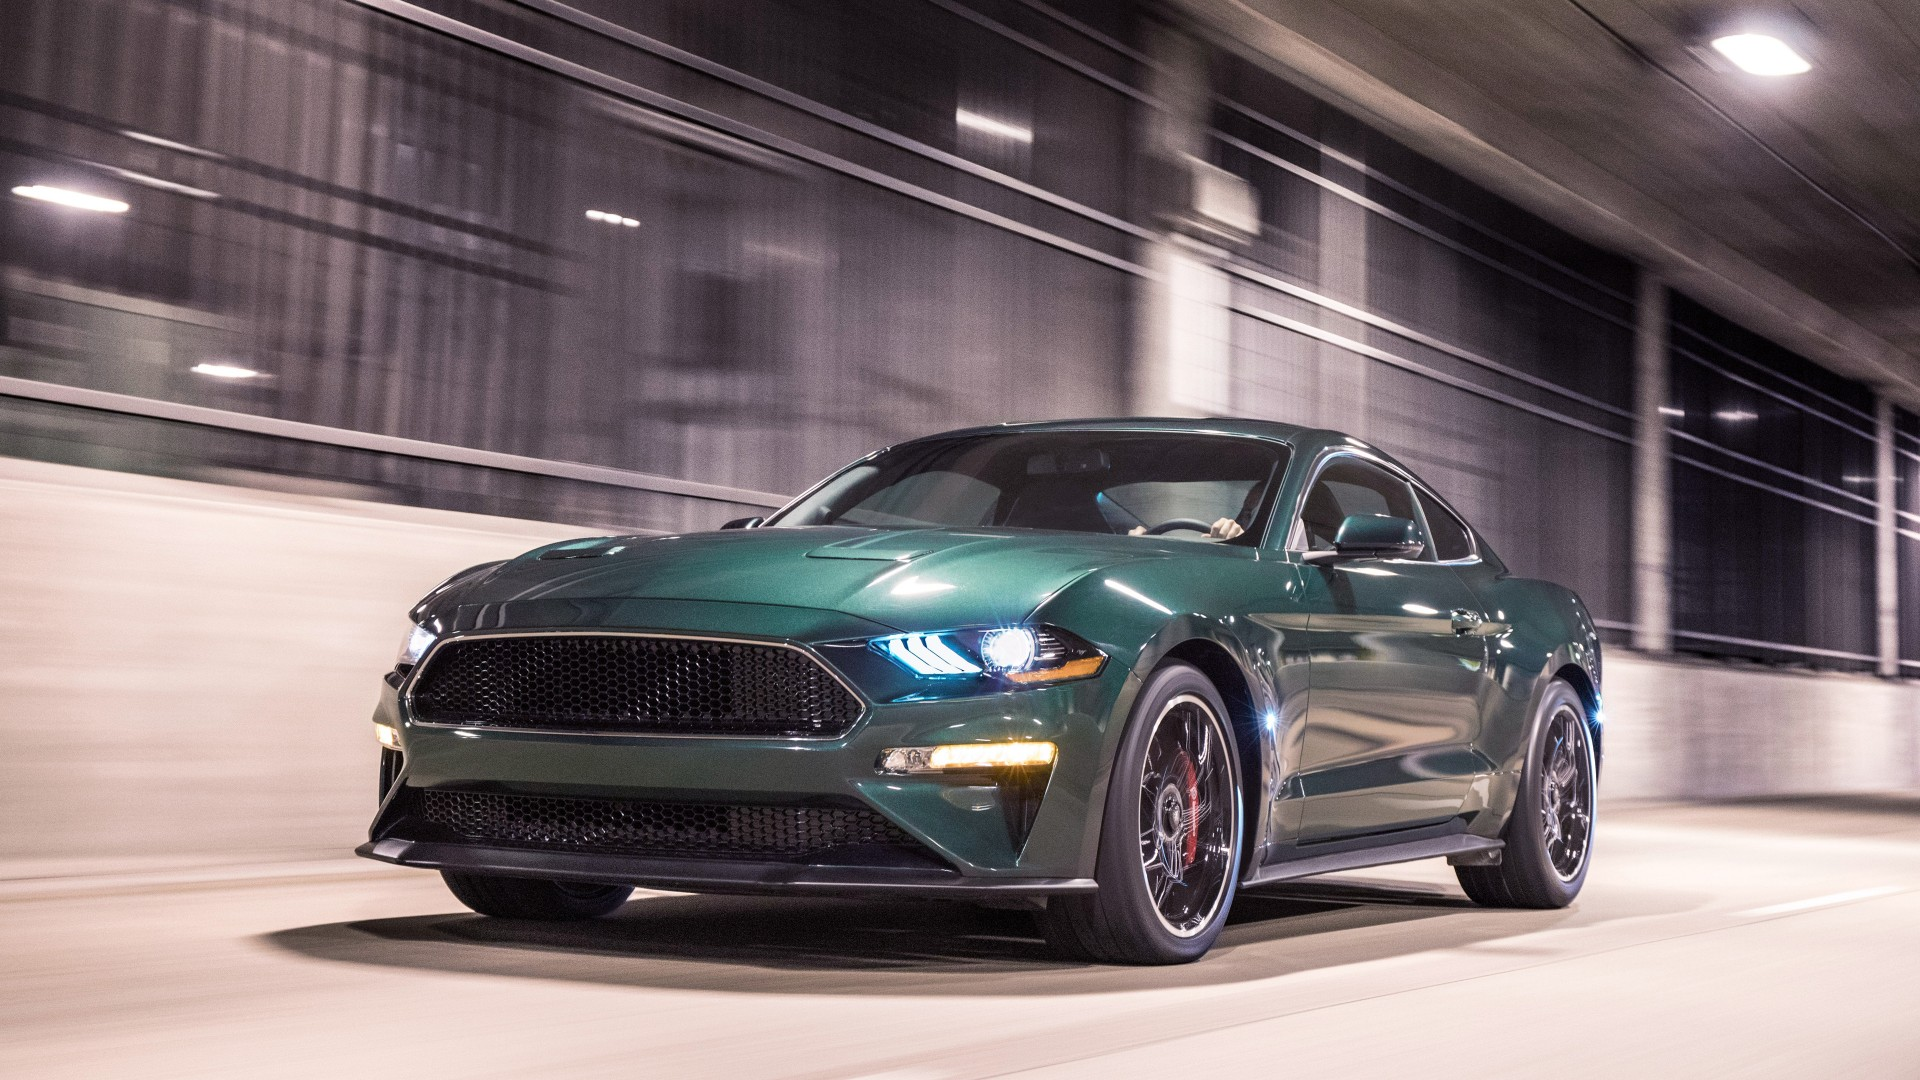 2019 Mustang Cobra >> 2019 Ford Mustang Bullitt 4K 3 Wallpaper | HD Car Wallpapers | ID #9430